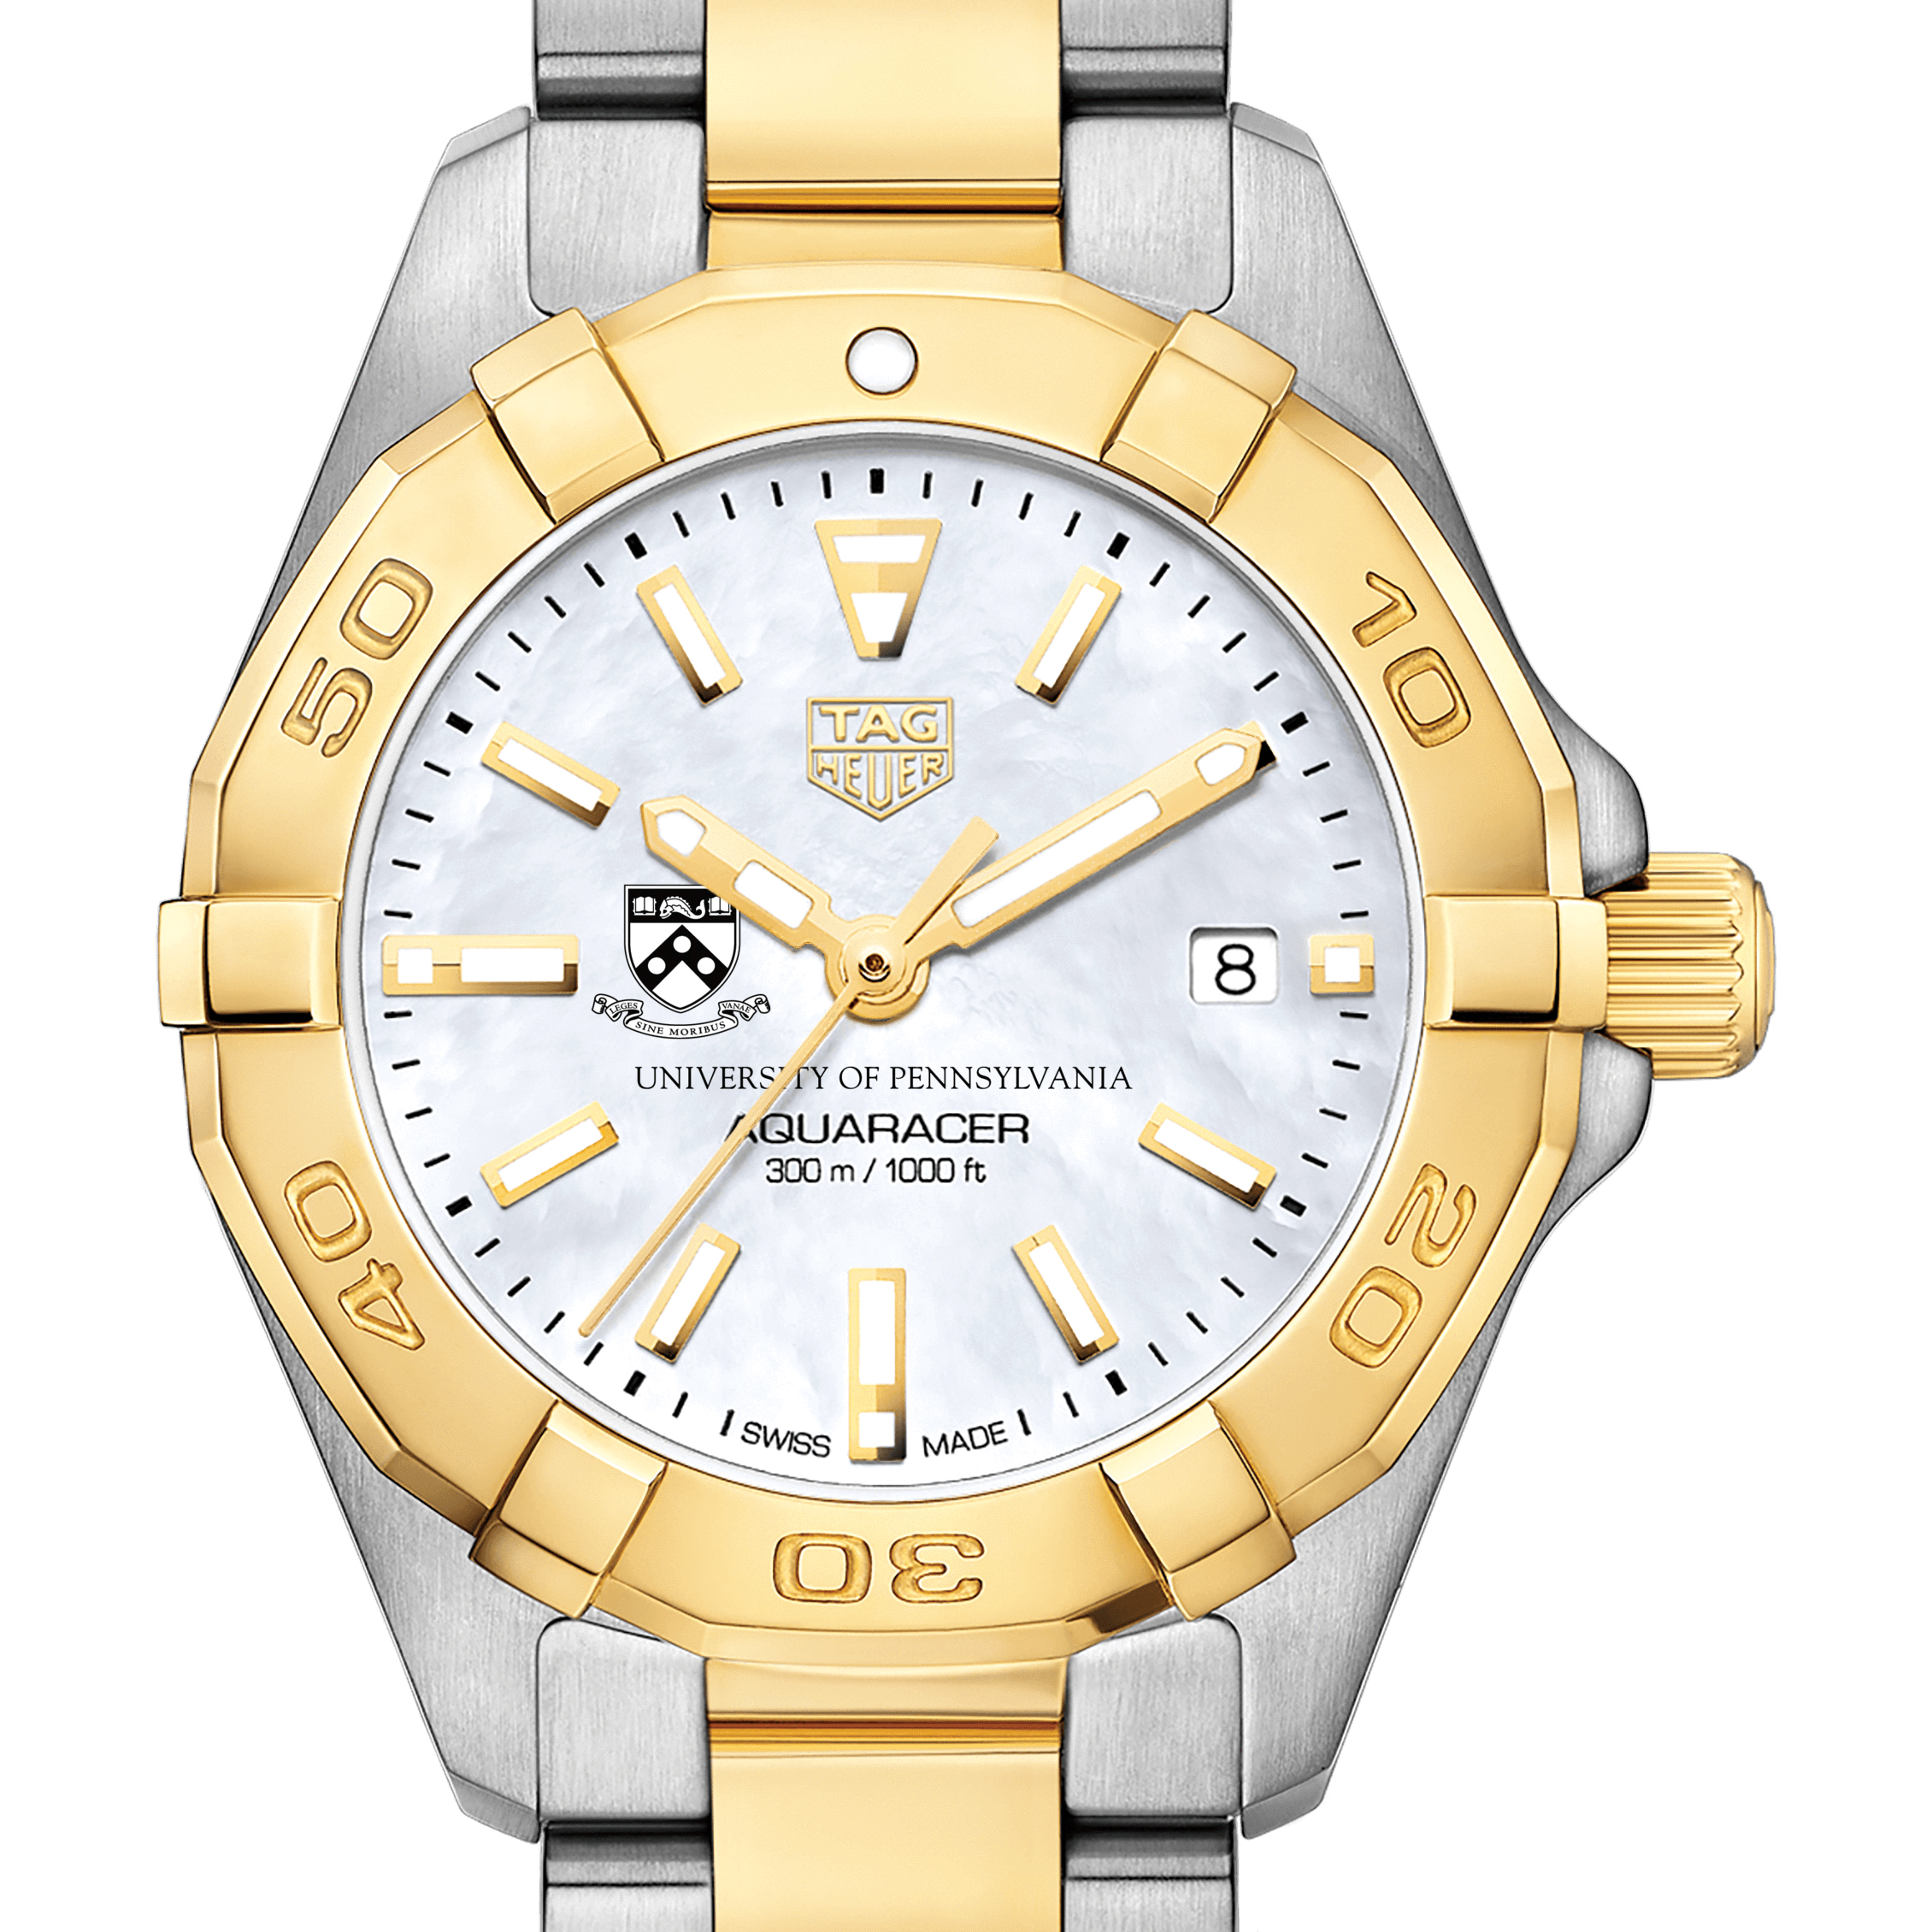 University of Pennsylvania TAG Heuer Two-Tone Aquaracer for Women